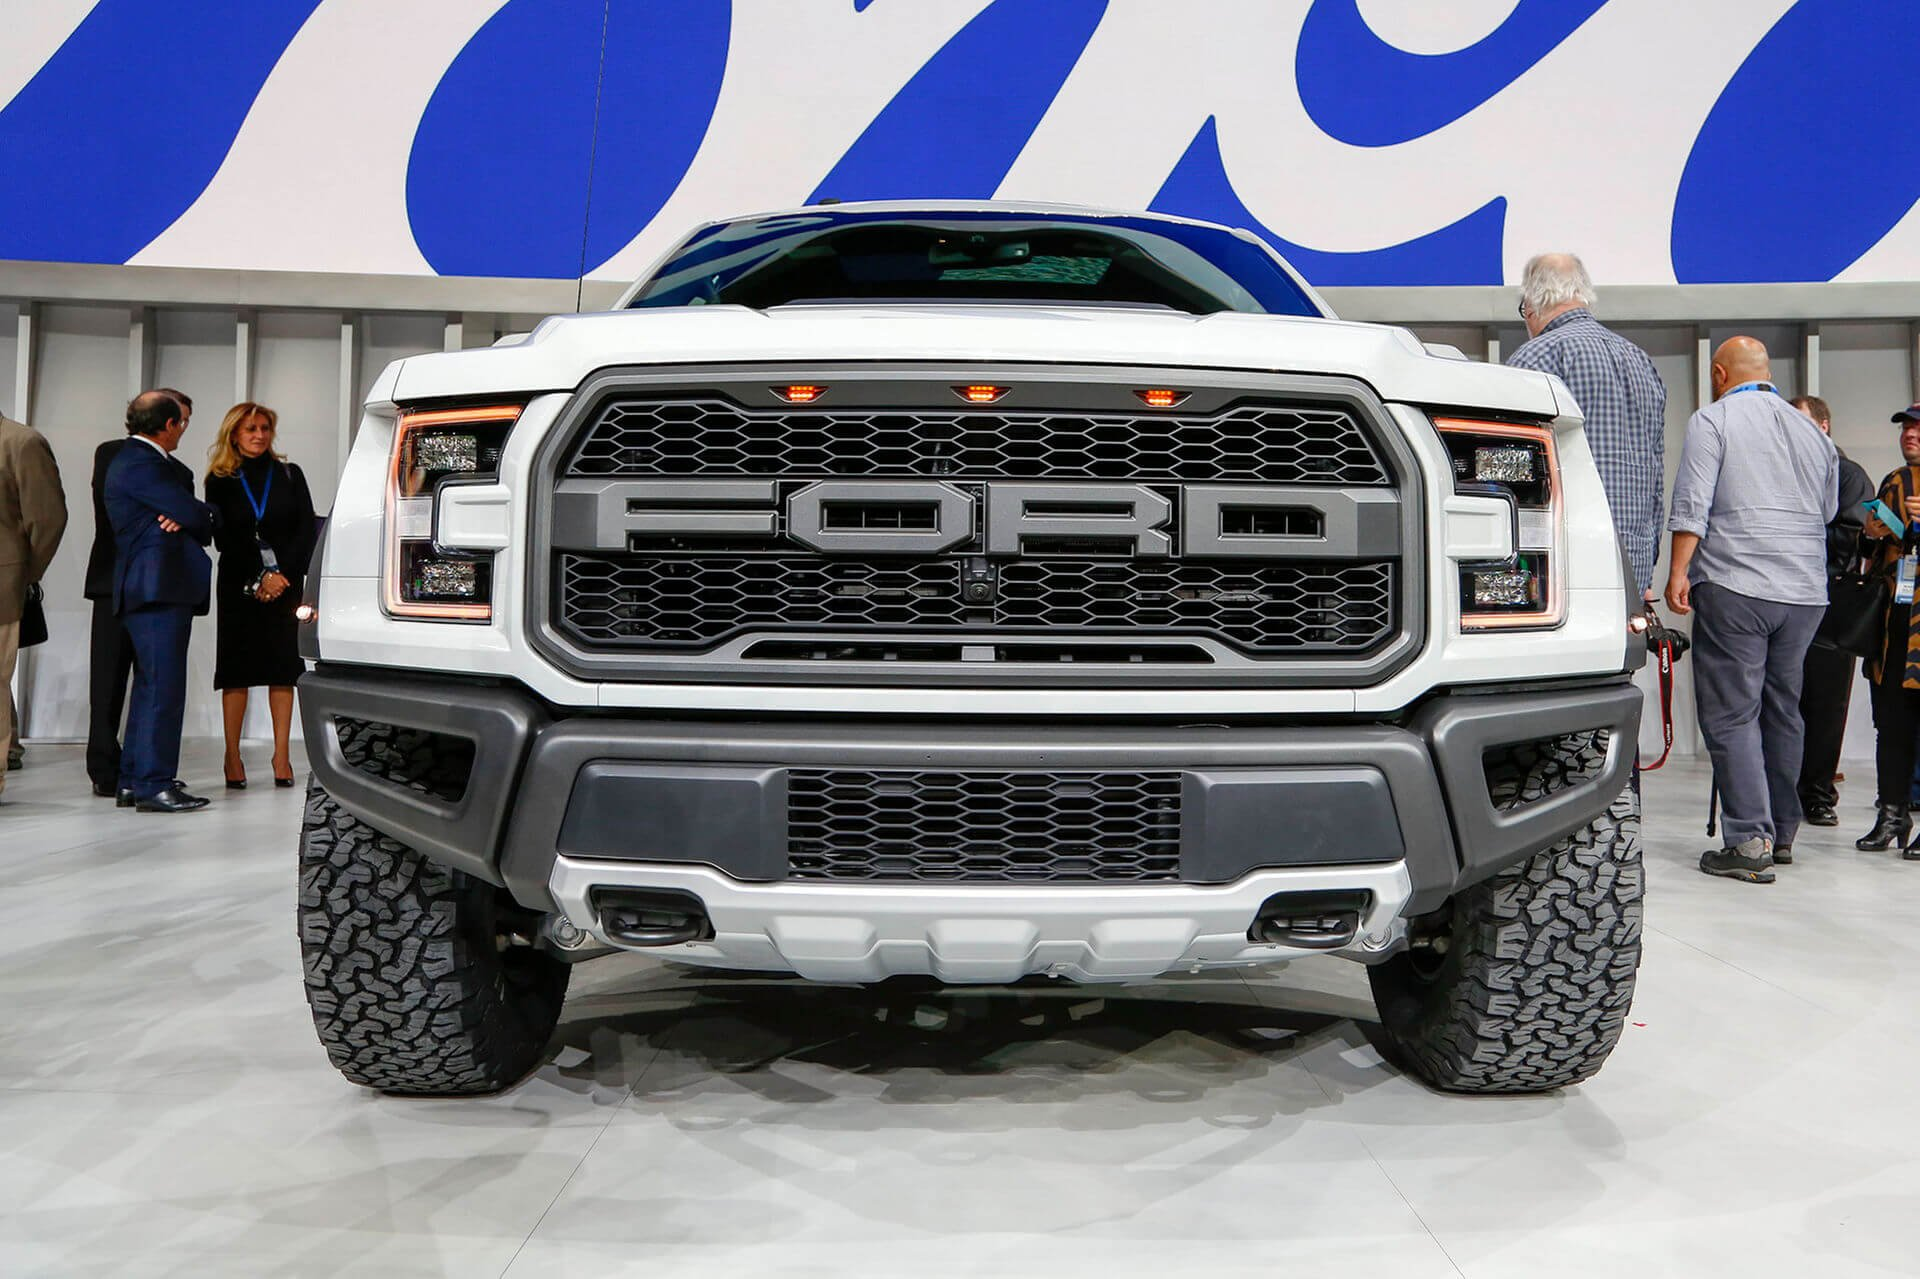 Ford F-150 Raptor Wins 2017 AutoGuide.com Reader's Choice Truck of the Year Award